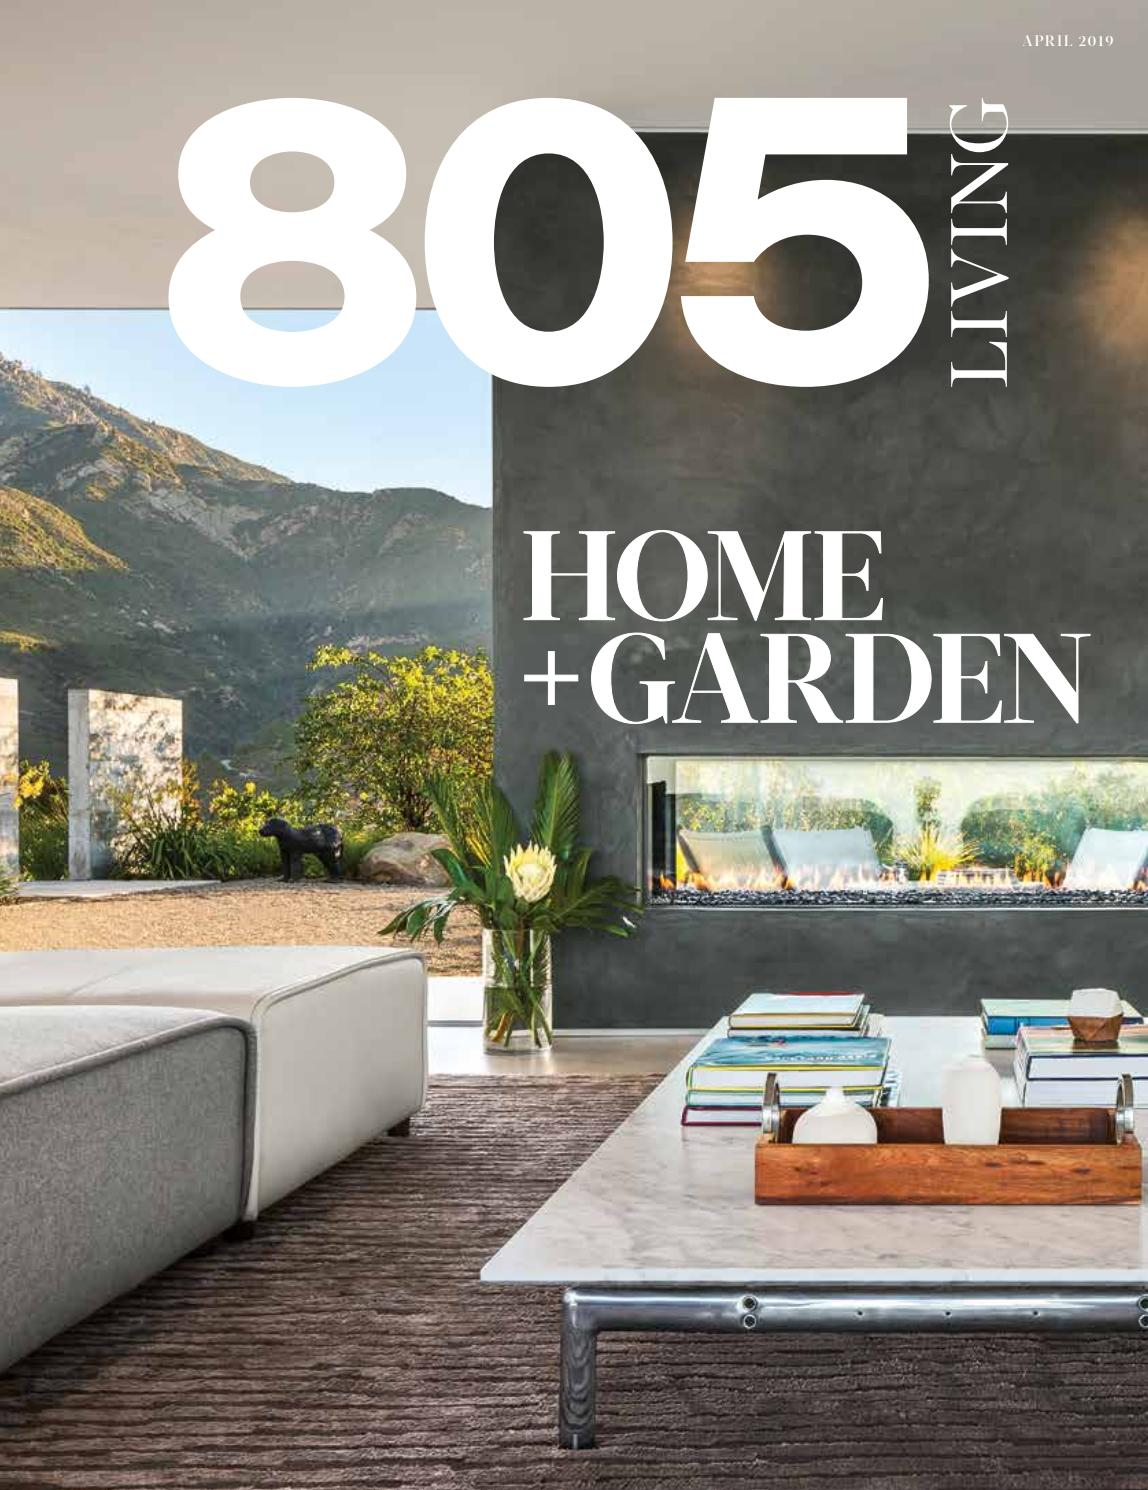 07132124eb3 805 Living April 2019 by 805 Living - issuu